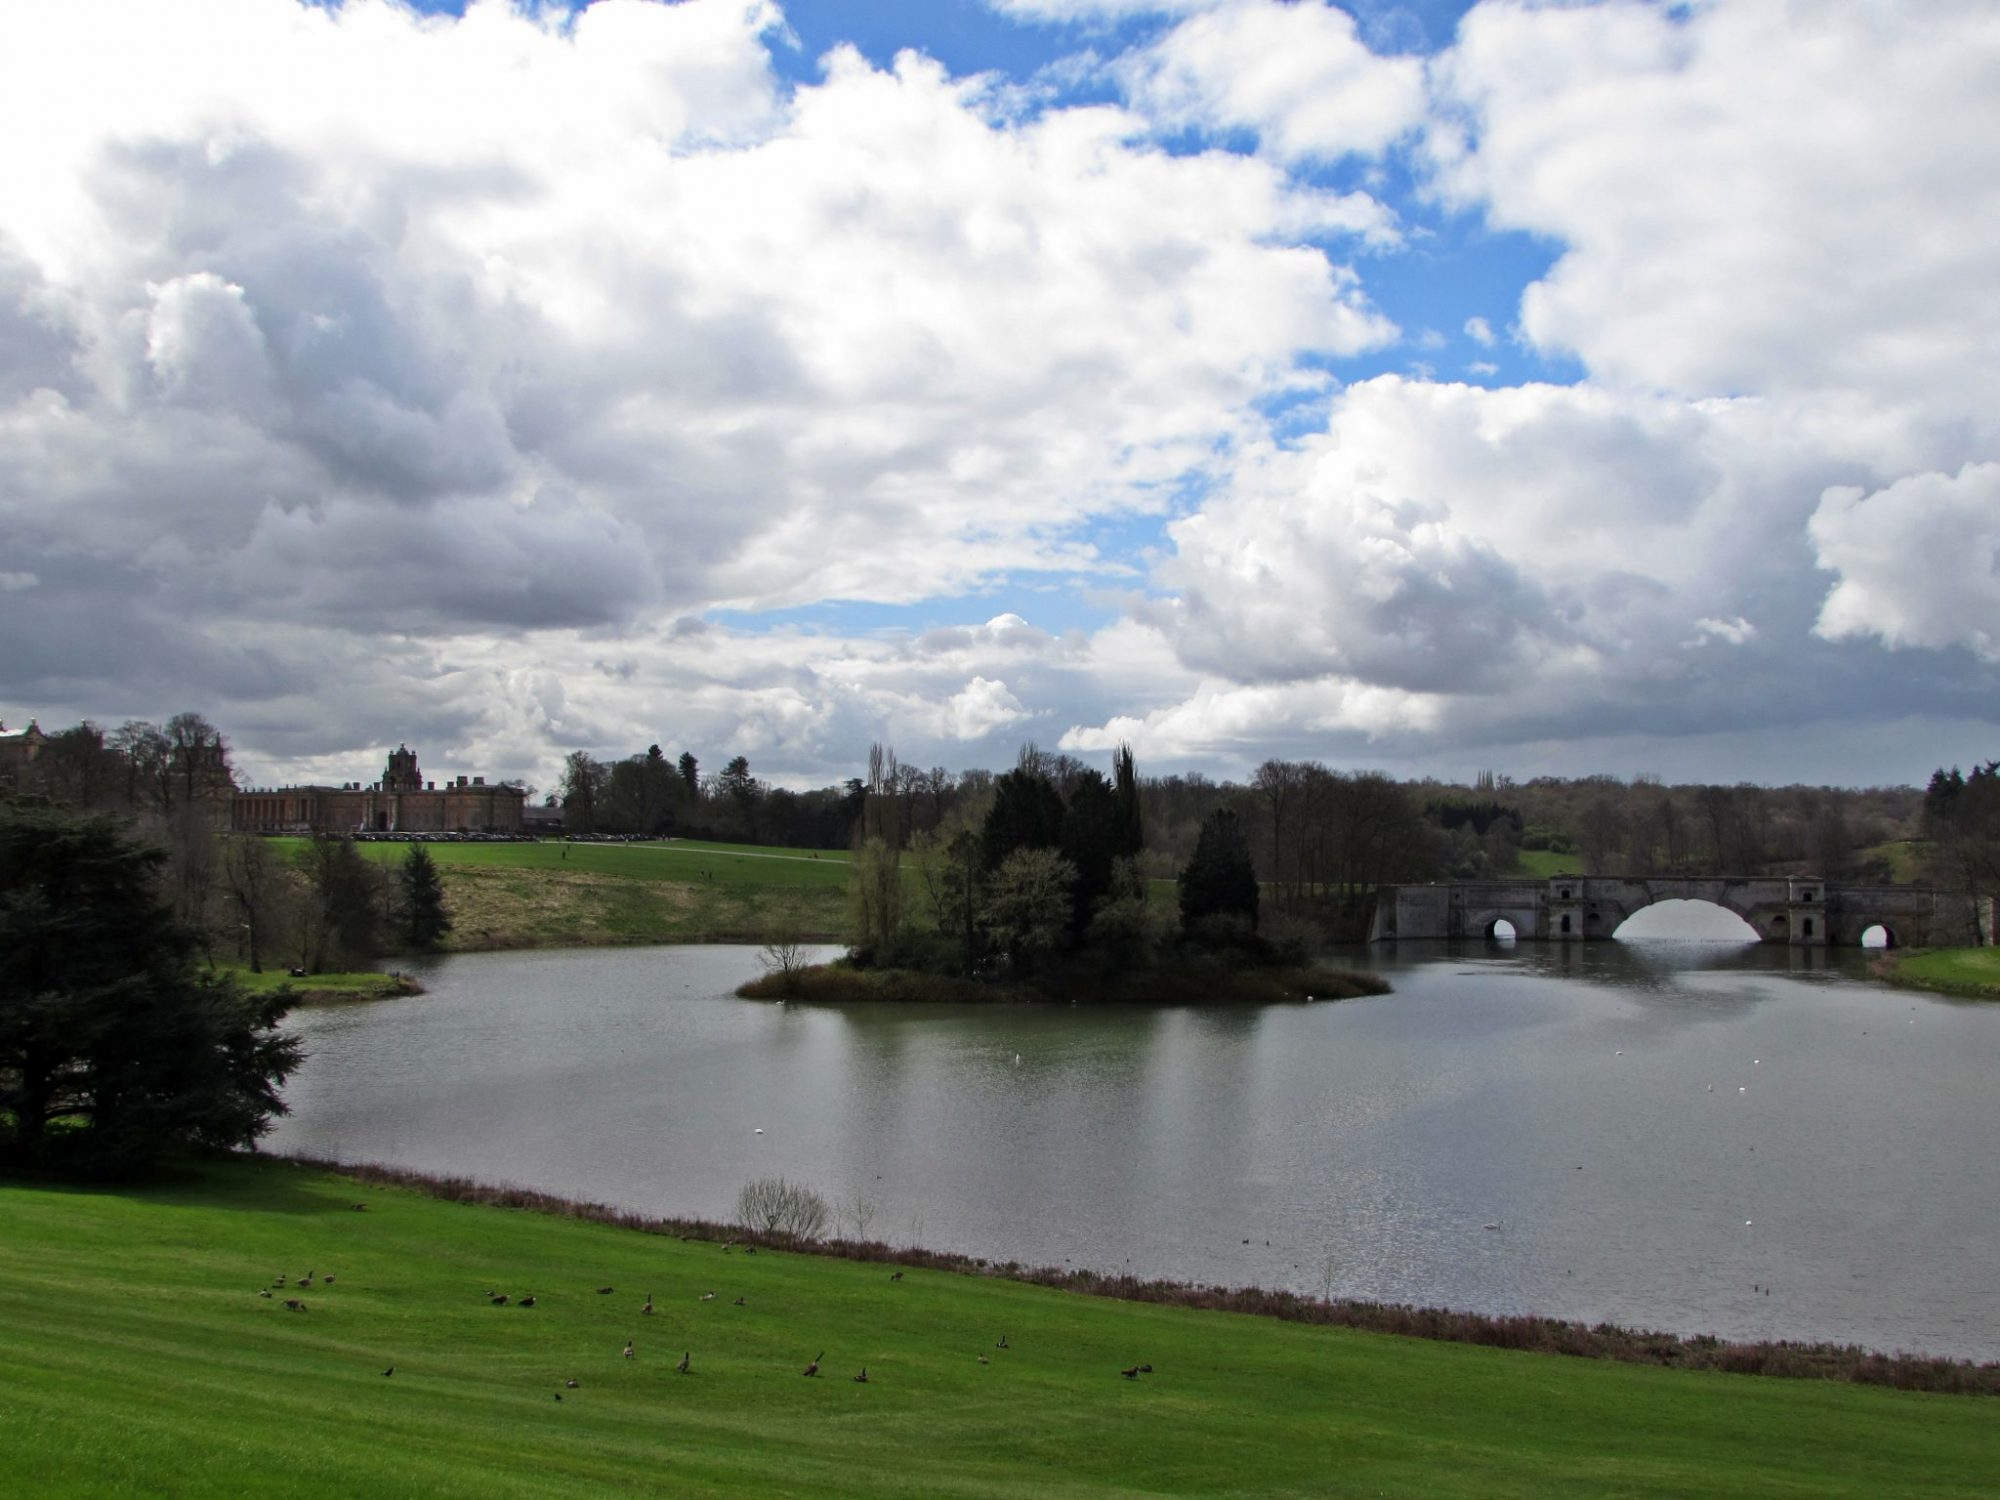 Queen Pool en el Palacio de Blenheim